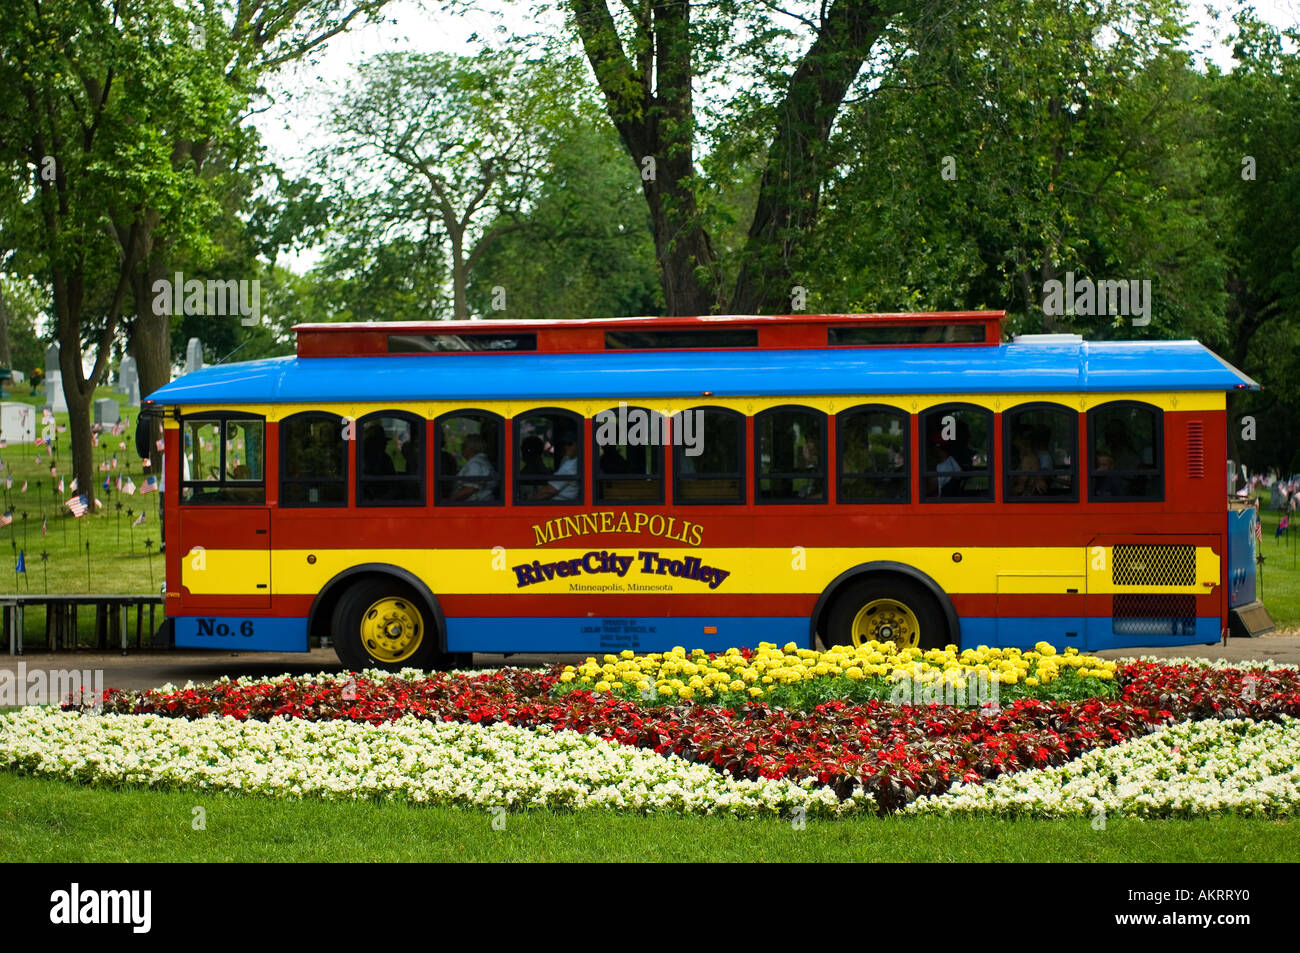 A trolley car in Minneapolis parked behind a flower garden Stock Photo